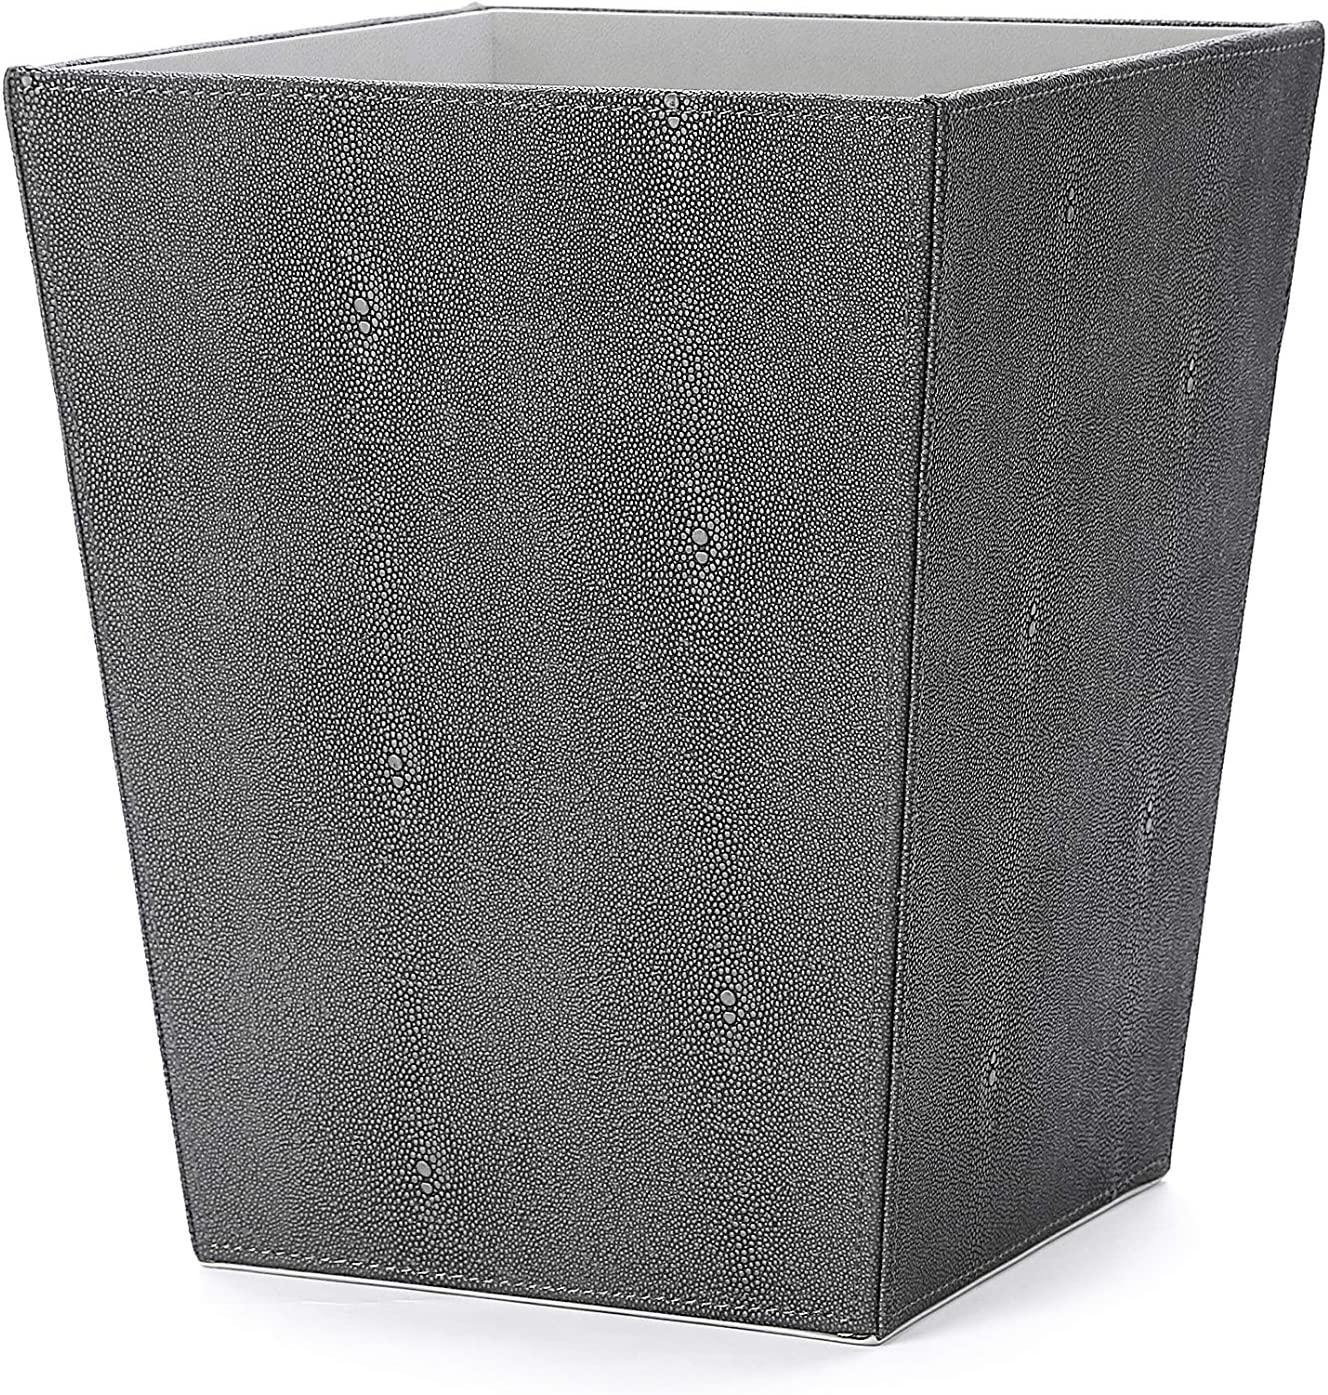 WV Faux Dark Grey Leather Trash Can, Waster Paper Bin, Wastebasket, Magazine Holder Faux Shagreen Finish for Bathroom,Kitchen,Home Office(Dark Grey)